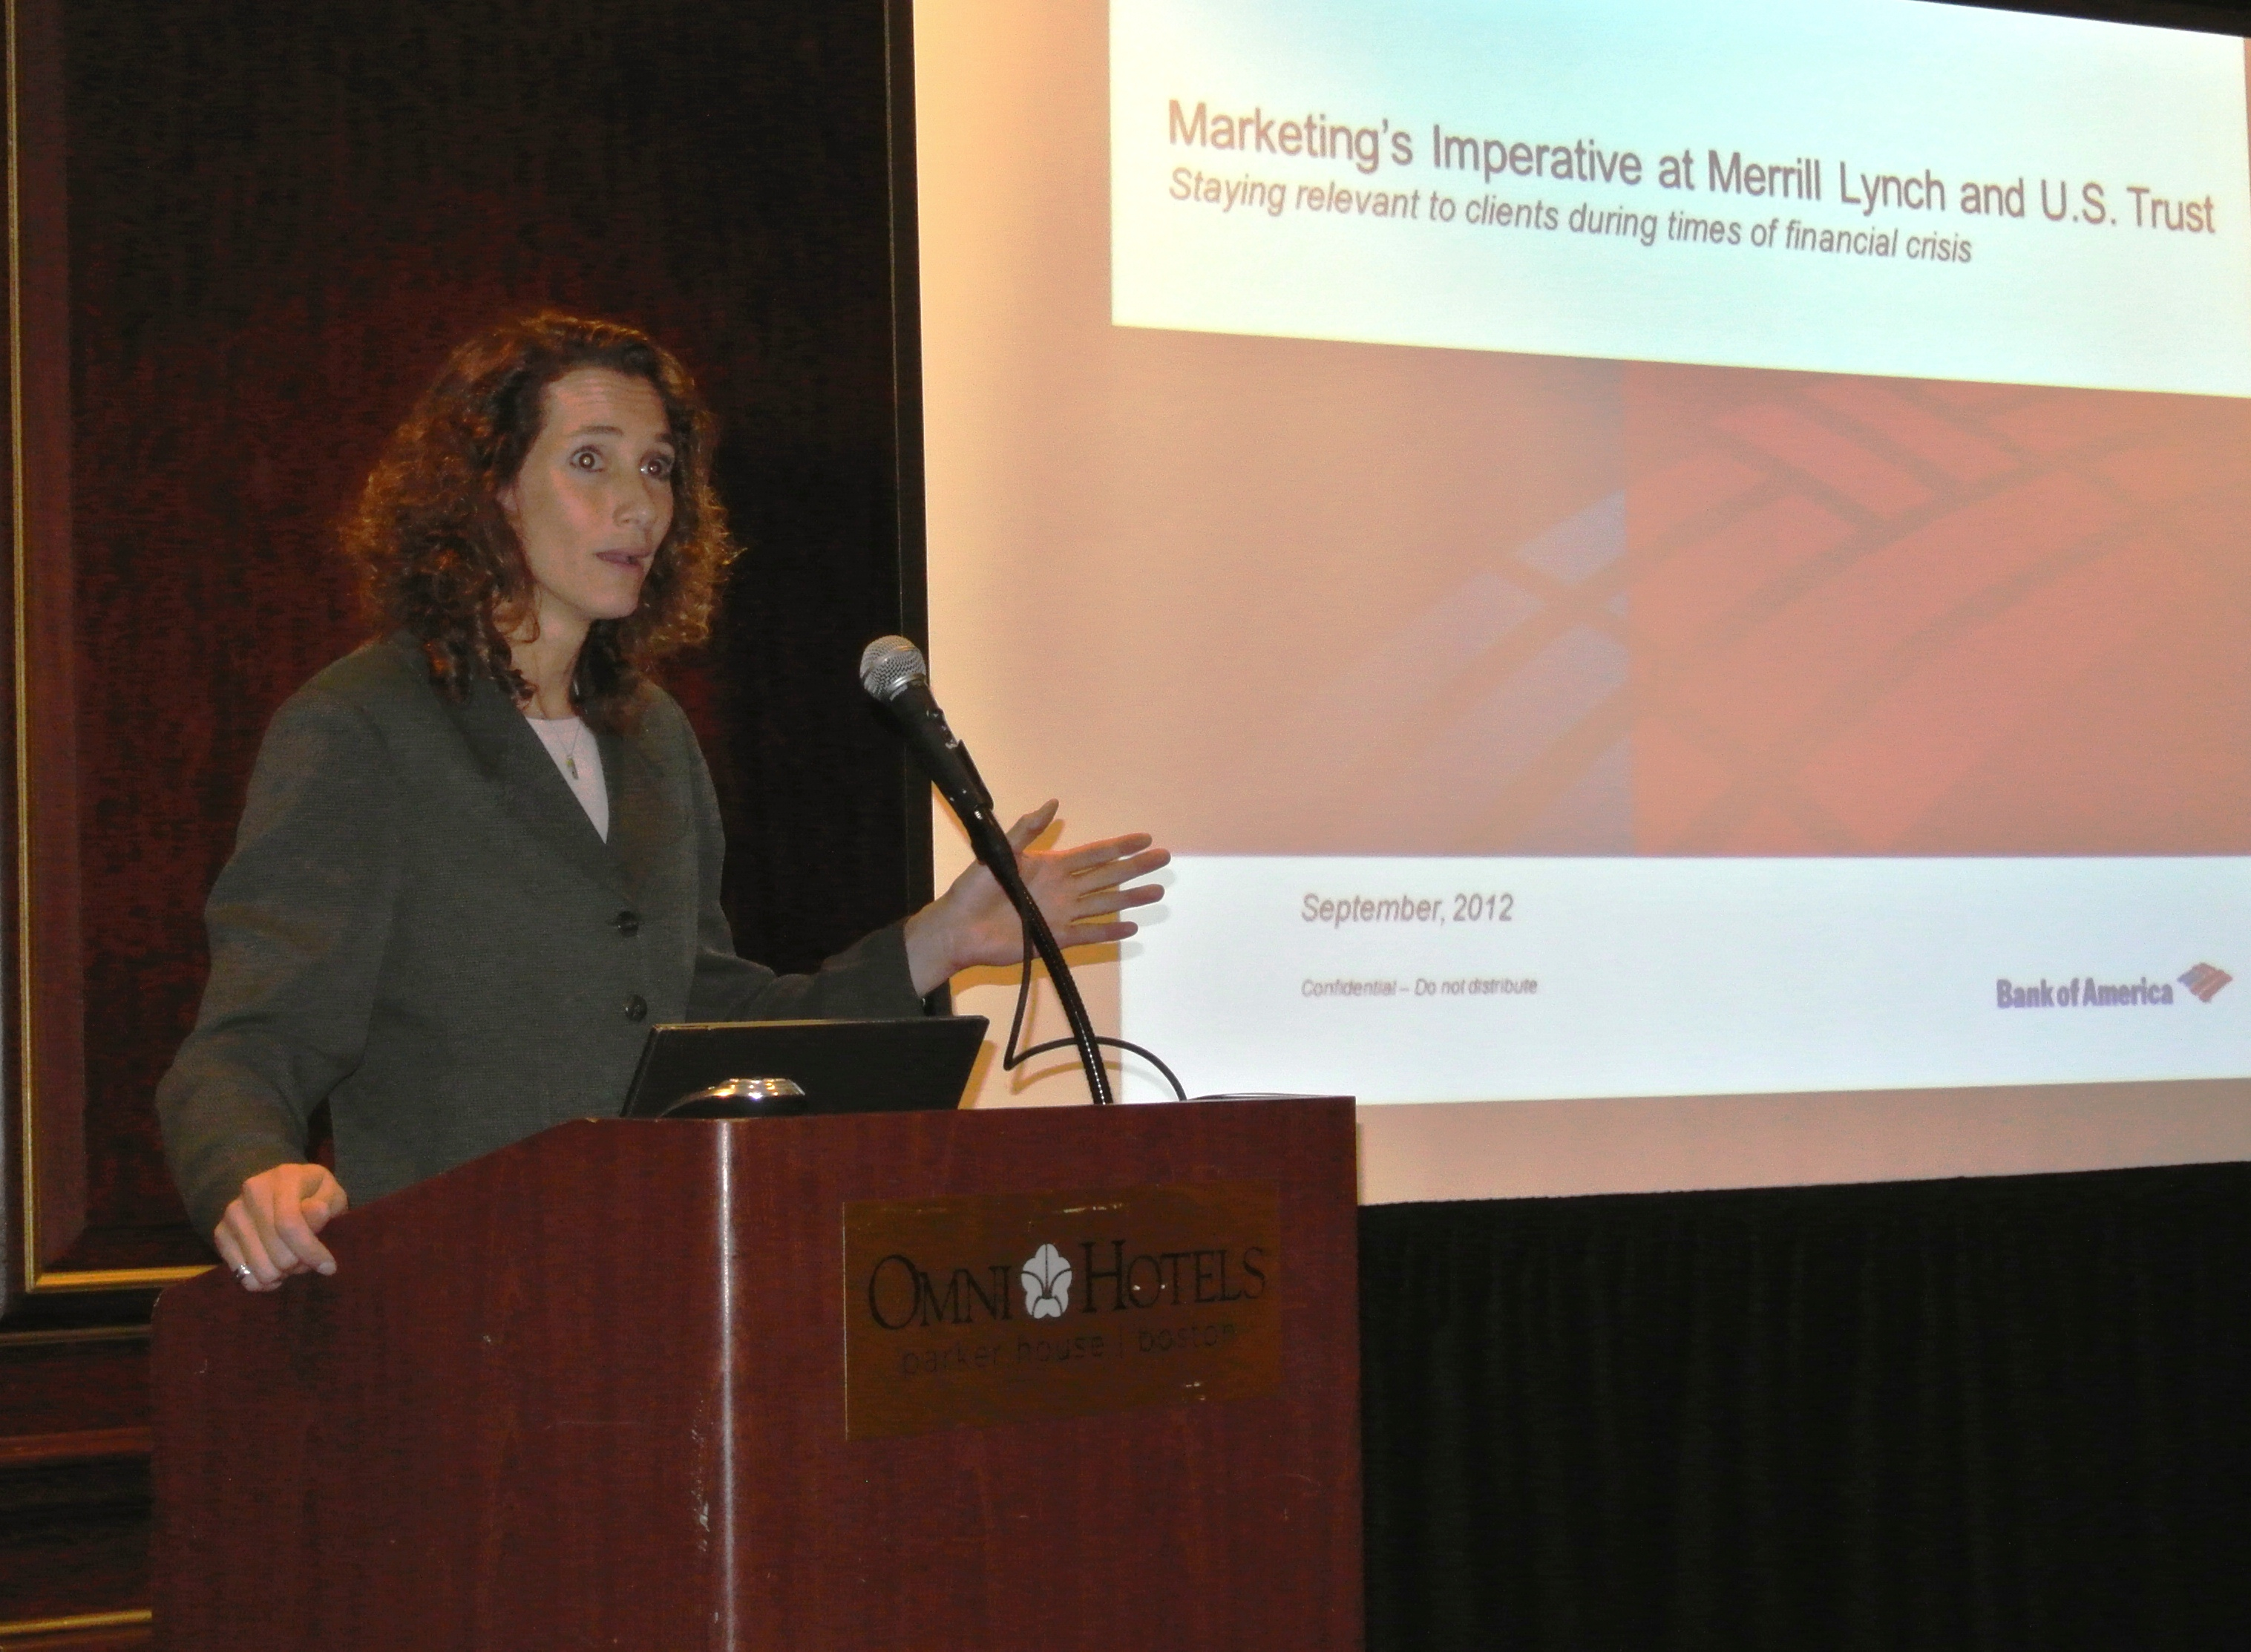 Justine Metz presenting On Merrill Lynch and US Trust to Financial Communications Society